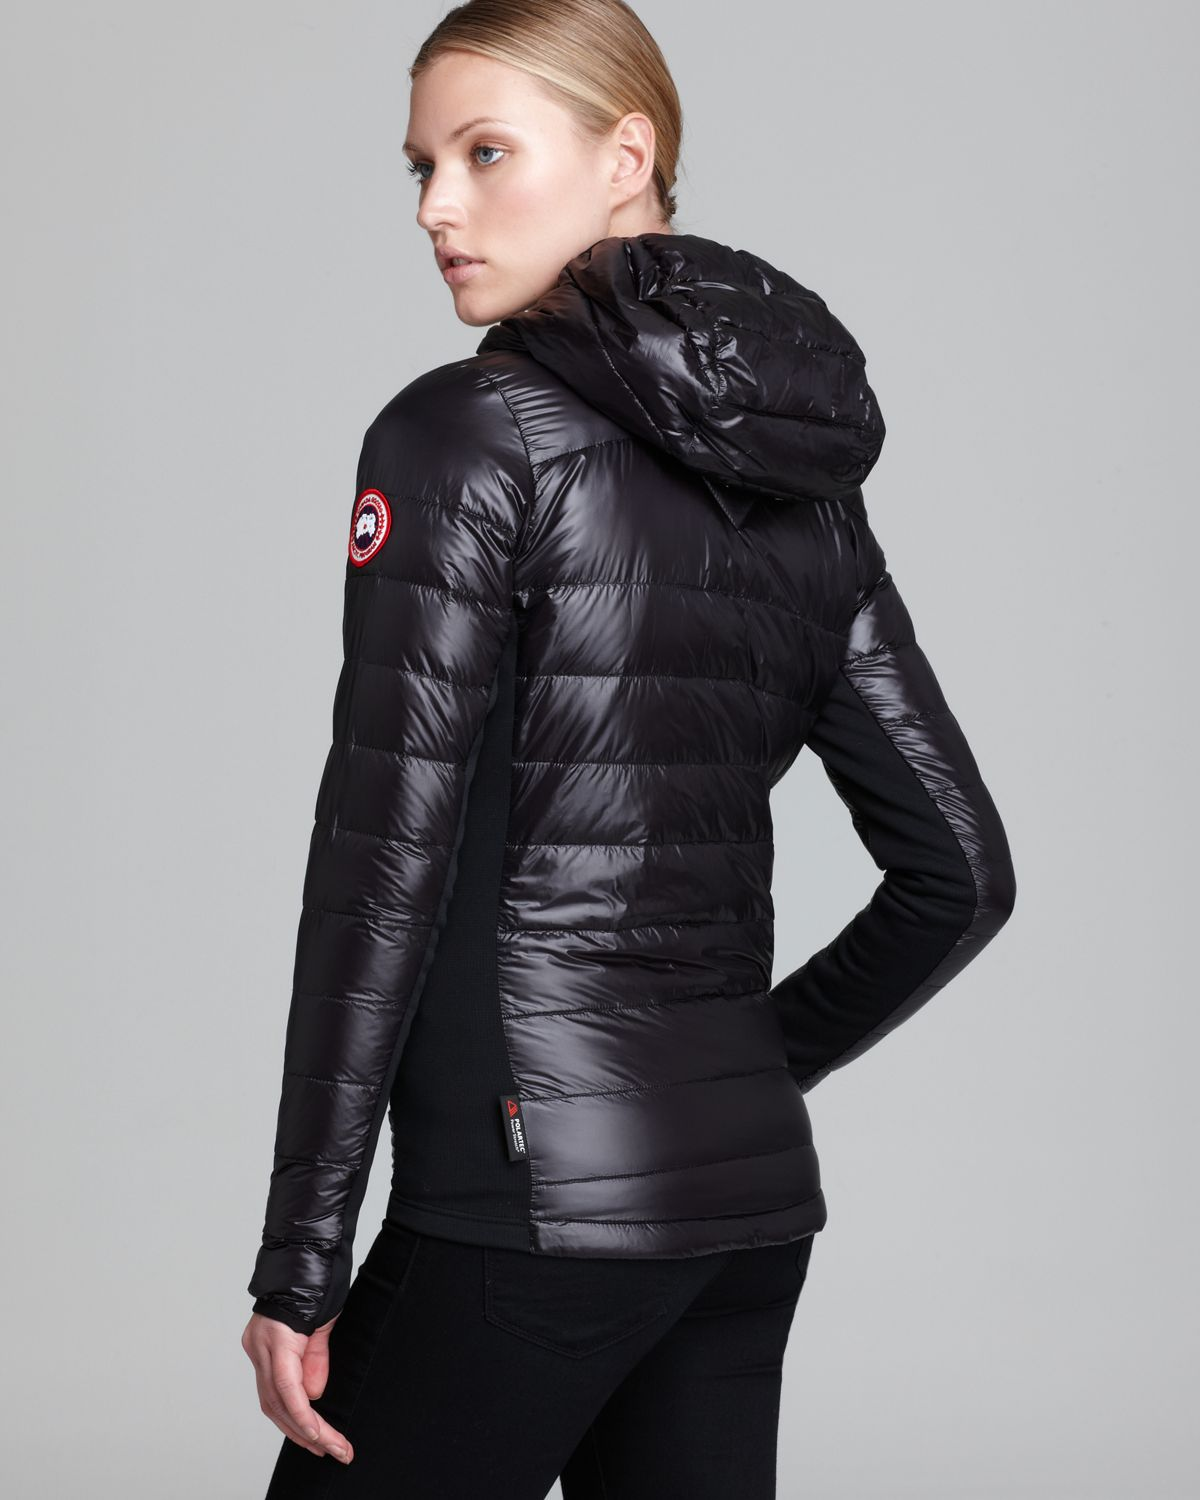 promo code for canada goose down womens jackets. gallery elrose parka aaf0d  be54c 8ed47b89e